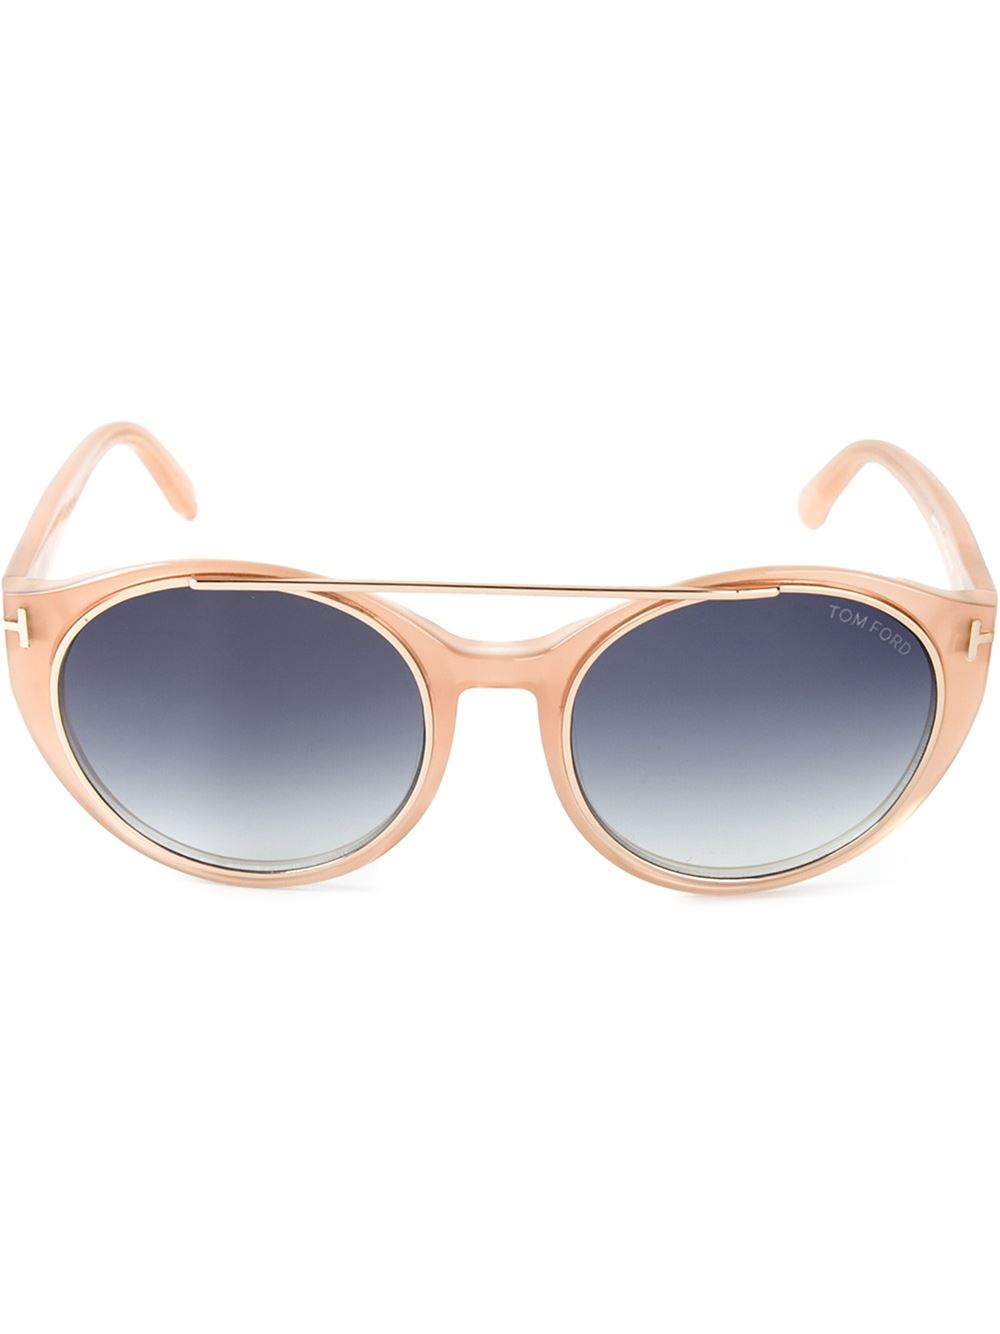 Lyst - Tom Ford Round Frame Sunglasses In Natural-8232